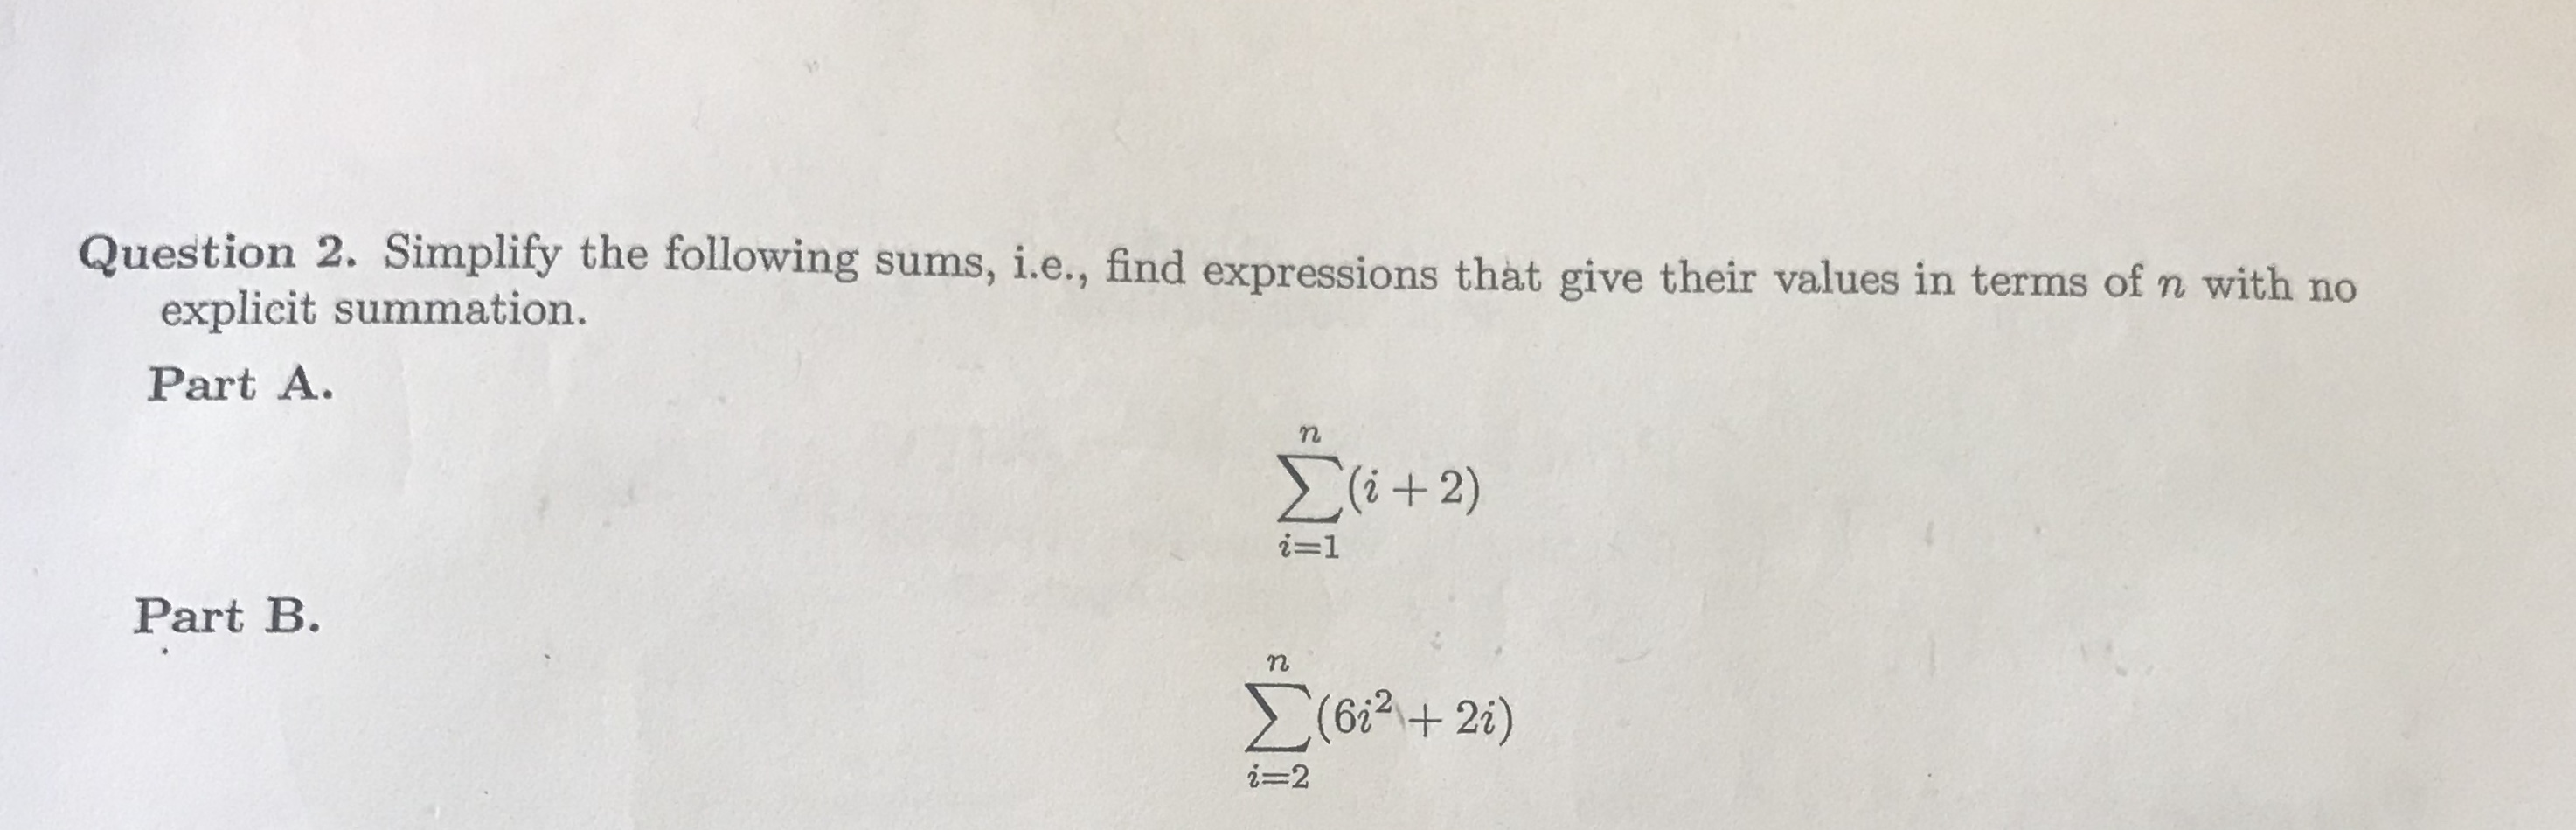 Question 2. Simplity the following sums, i.e, find expressions that give their values in terms of n with no , i.e., find expressions that give their values in terms of n with no explicit summation. Part A. ー1 Part B. 6i2+ 2 i-2